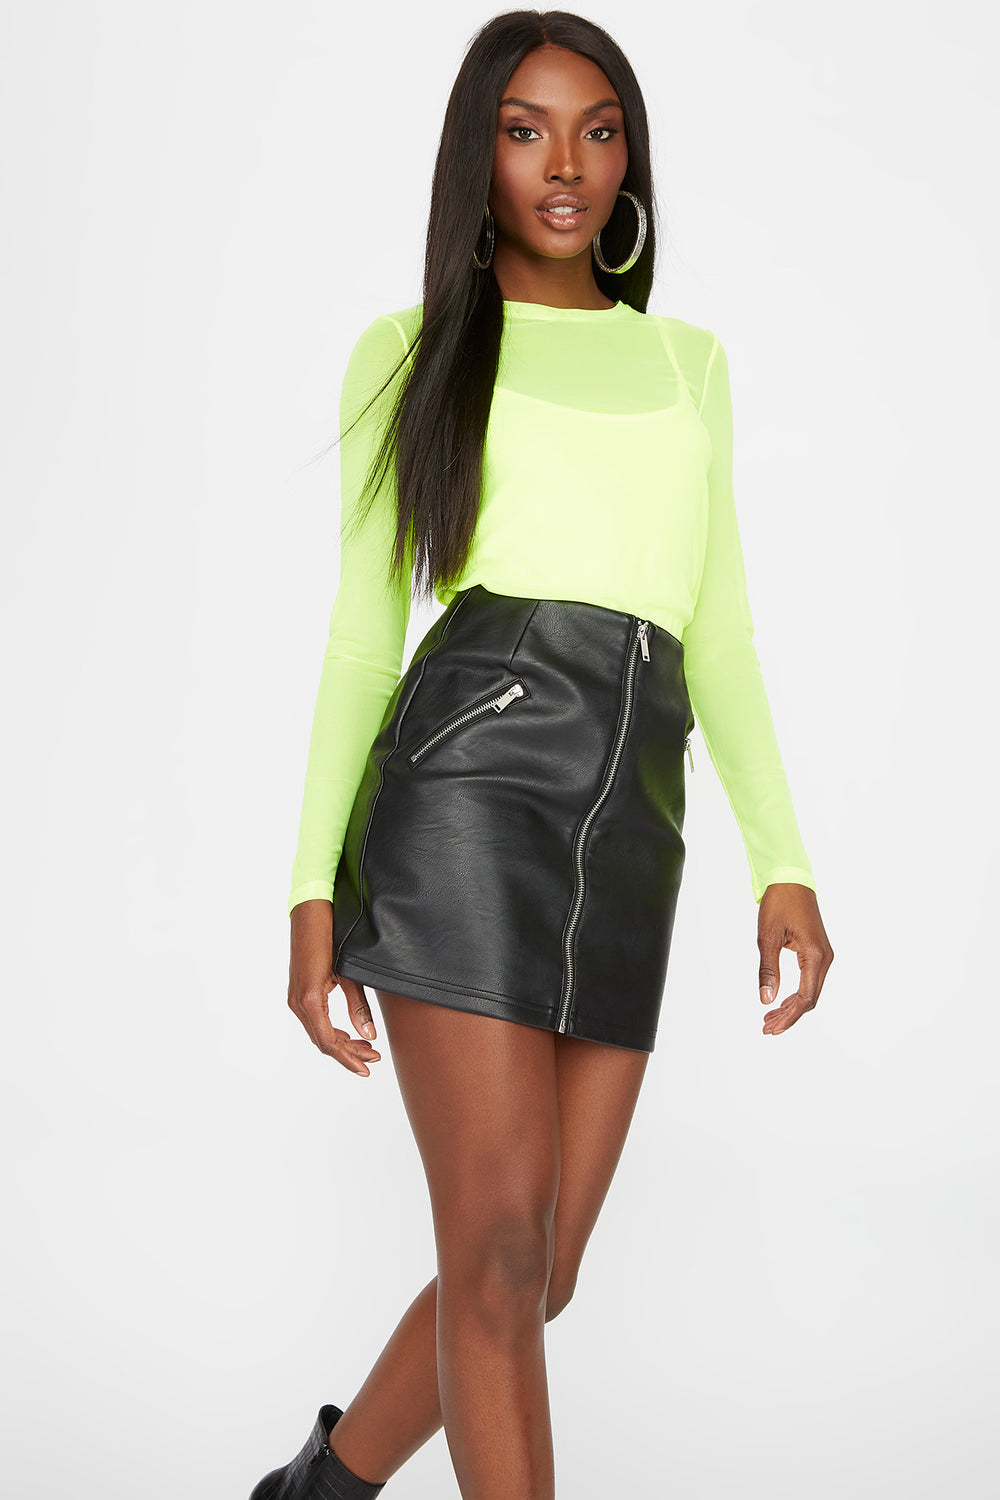 Mesh Long Sleeve with Camisole Neon Yellow